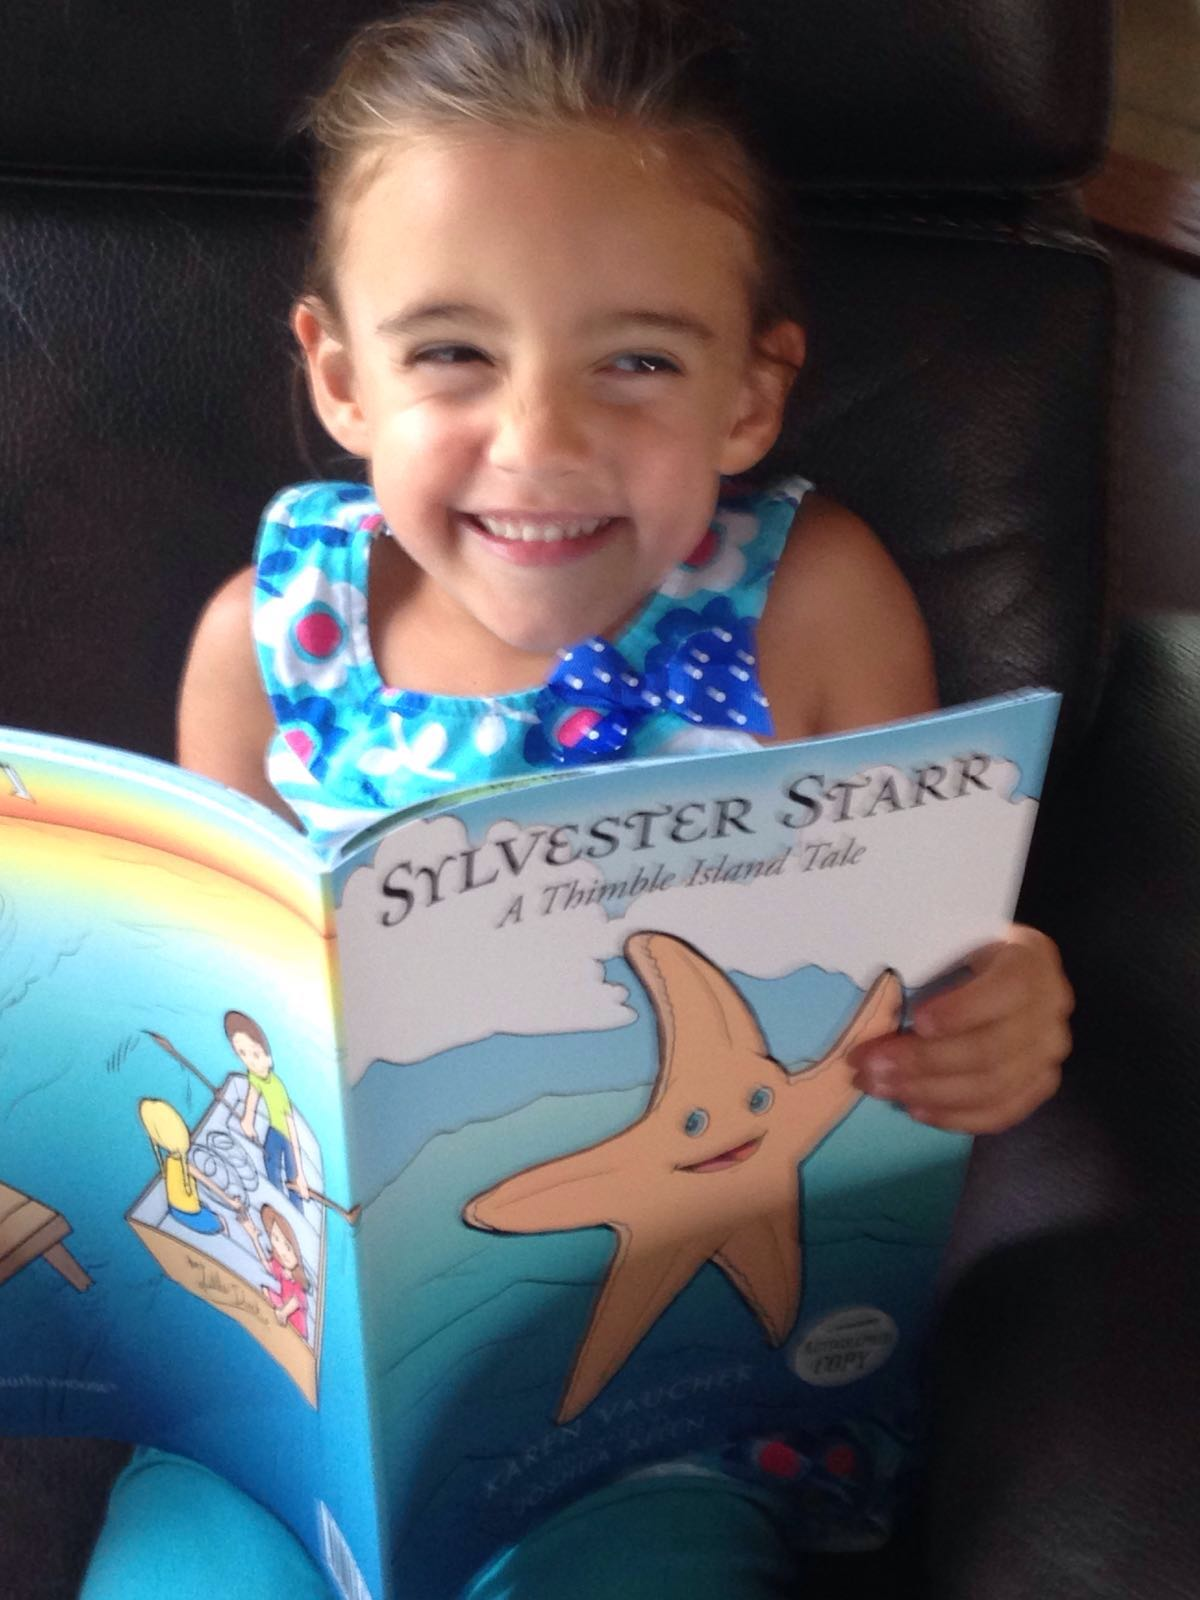 Girl reading Sylvester Starr